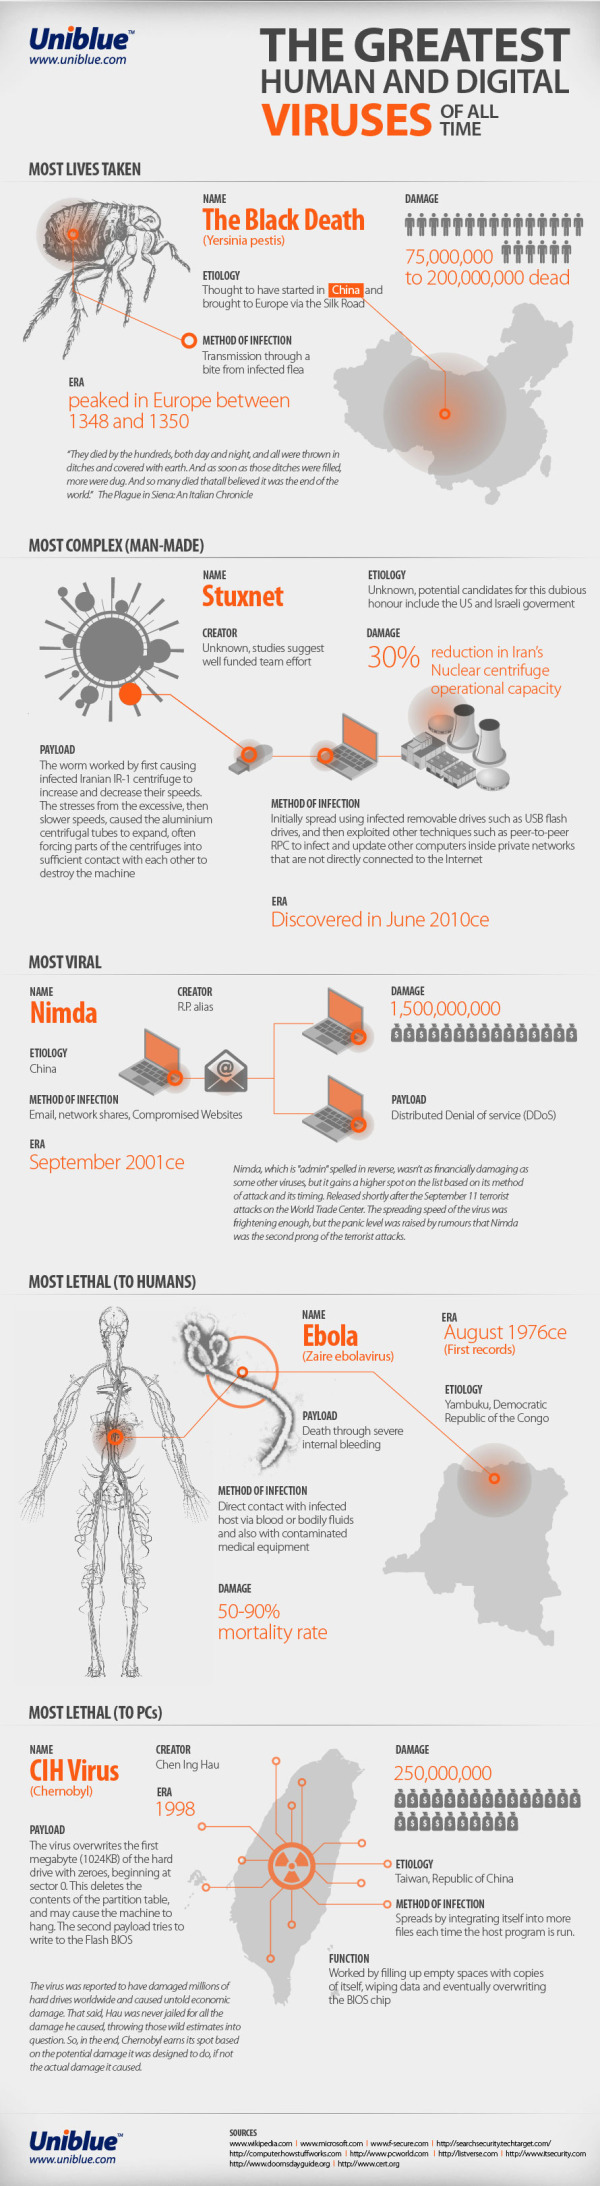 The Greatest Human and Digital Viruses of All Time infographic